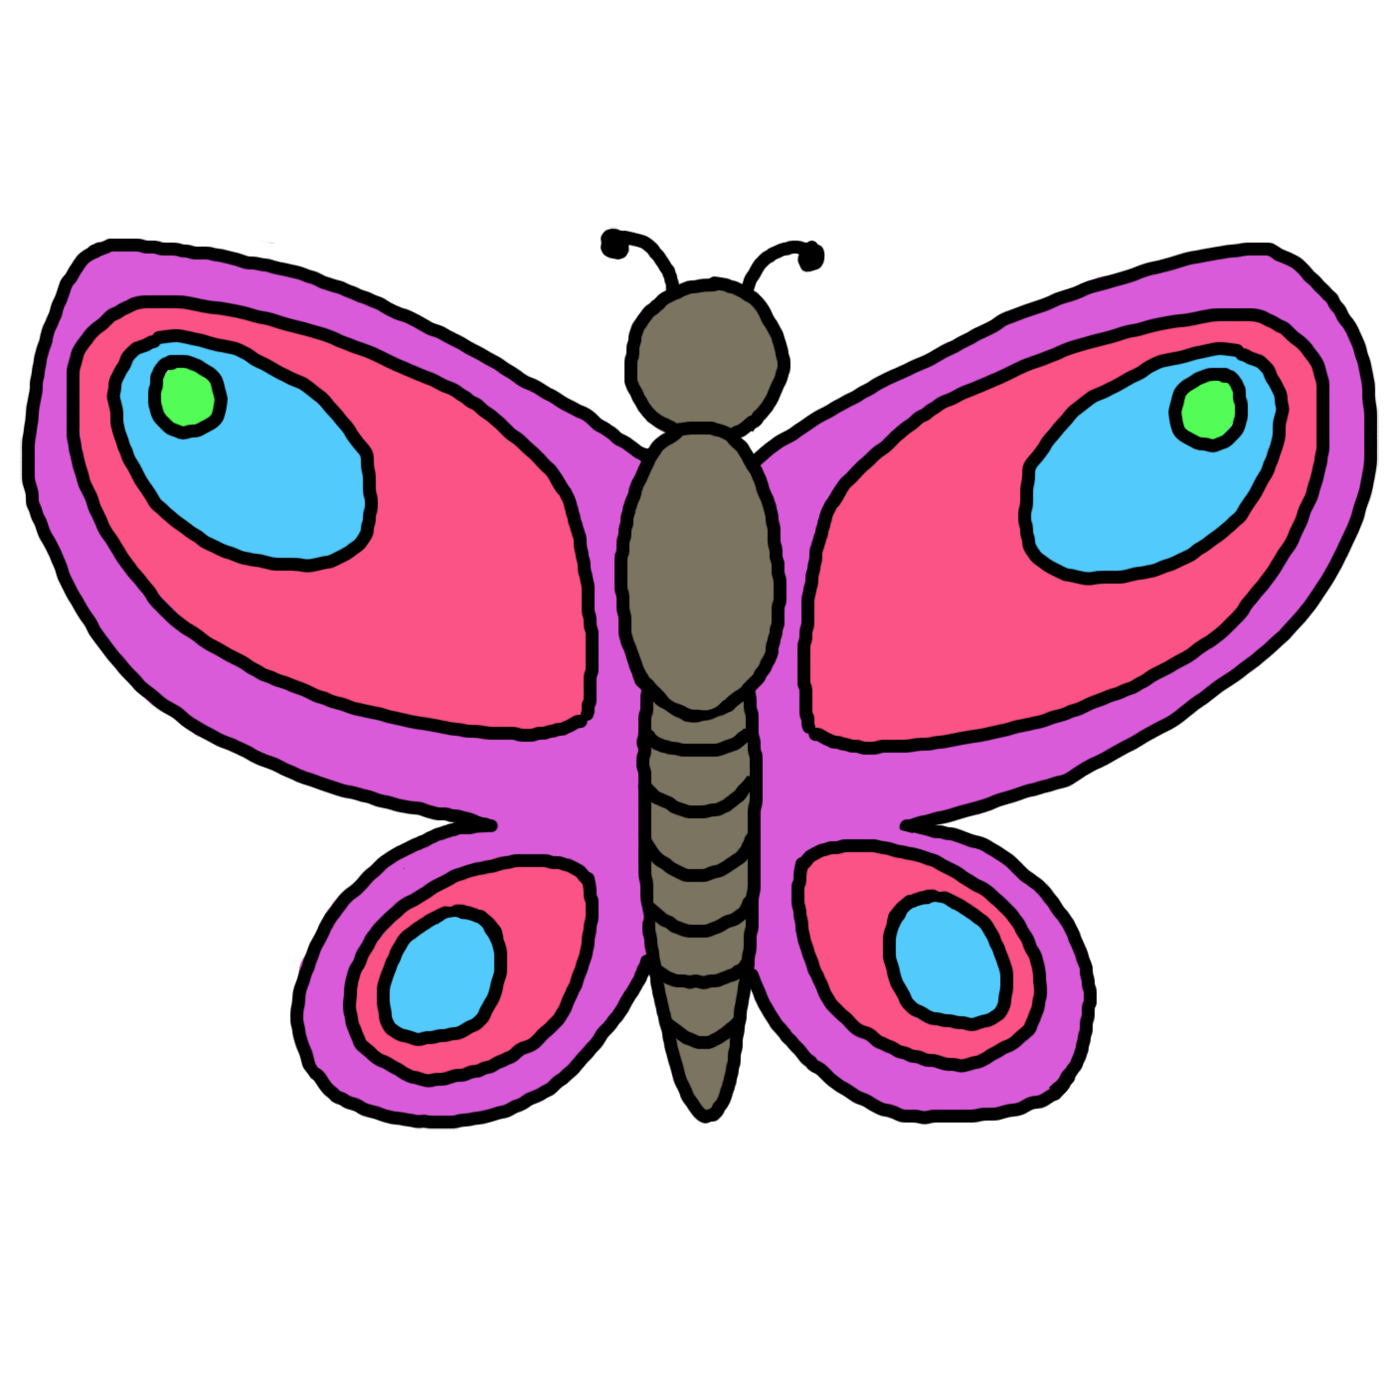 hight resolution of how to draw a clip art pinterest outside clipart butterfly pink and purple transparent